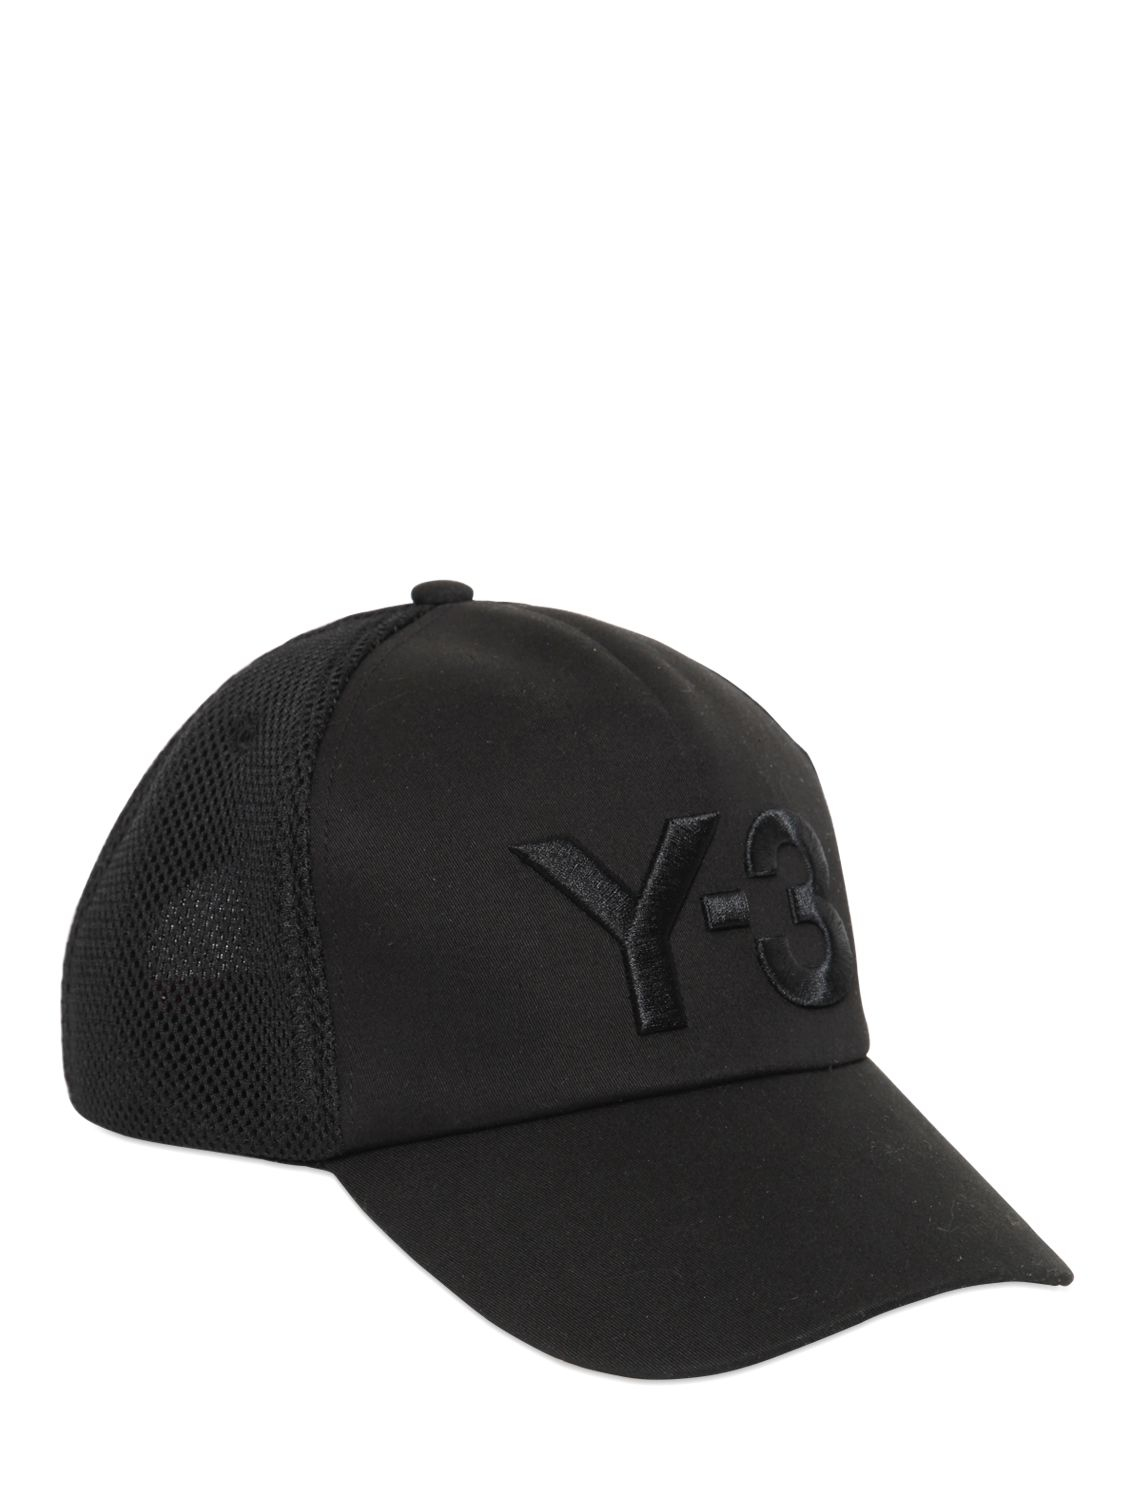 Y-3 Logo Mesh   Nylon Trucker Hat in Black for Men - Lyst b0591861cde